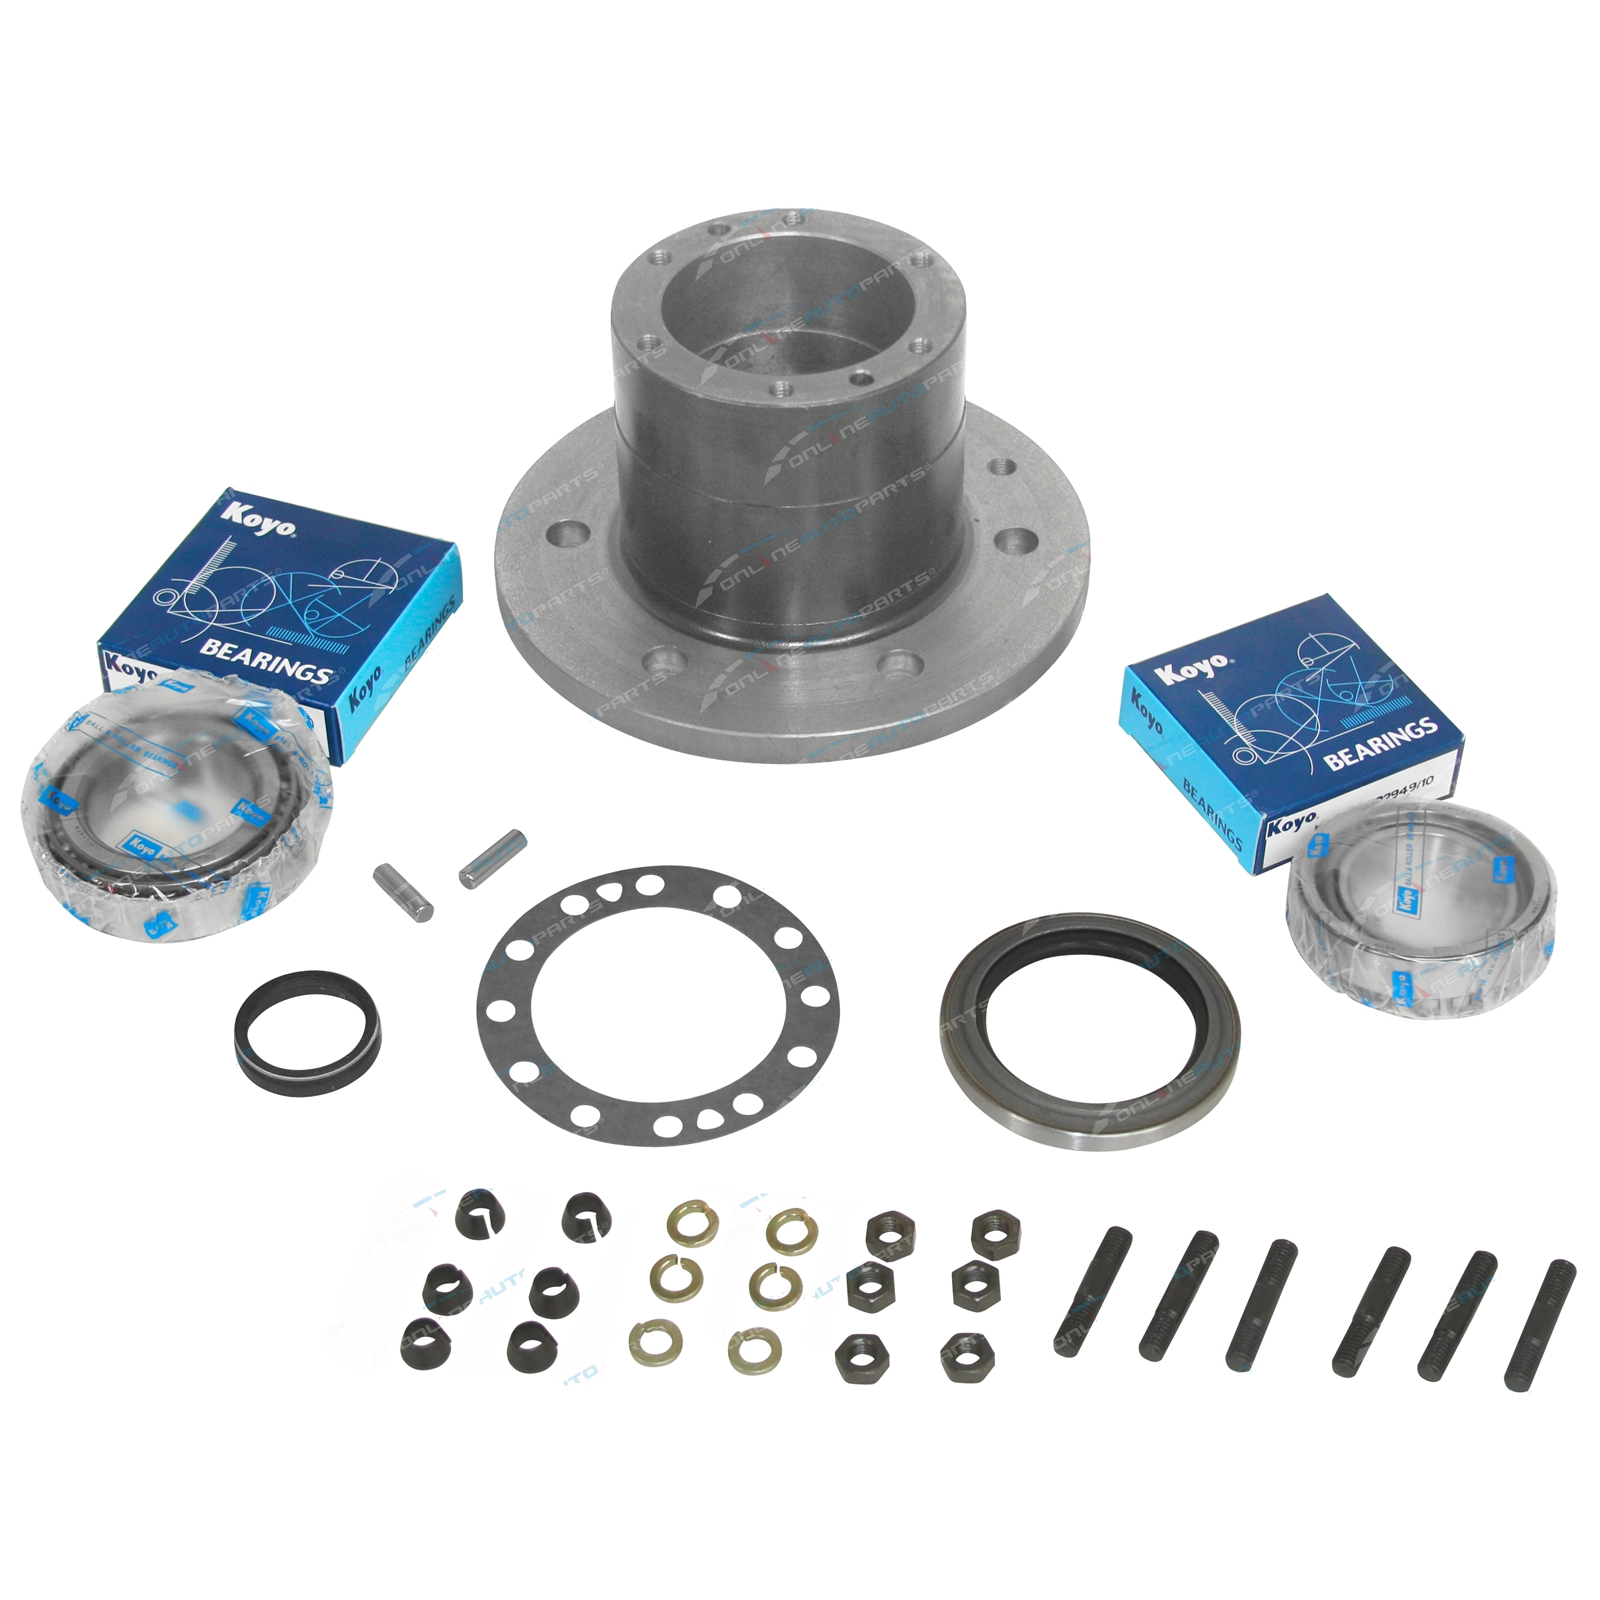 2 For Toyota Landcruiser HJ47 HJ45 Series Axle Locating Pins